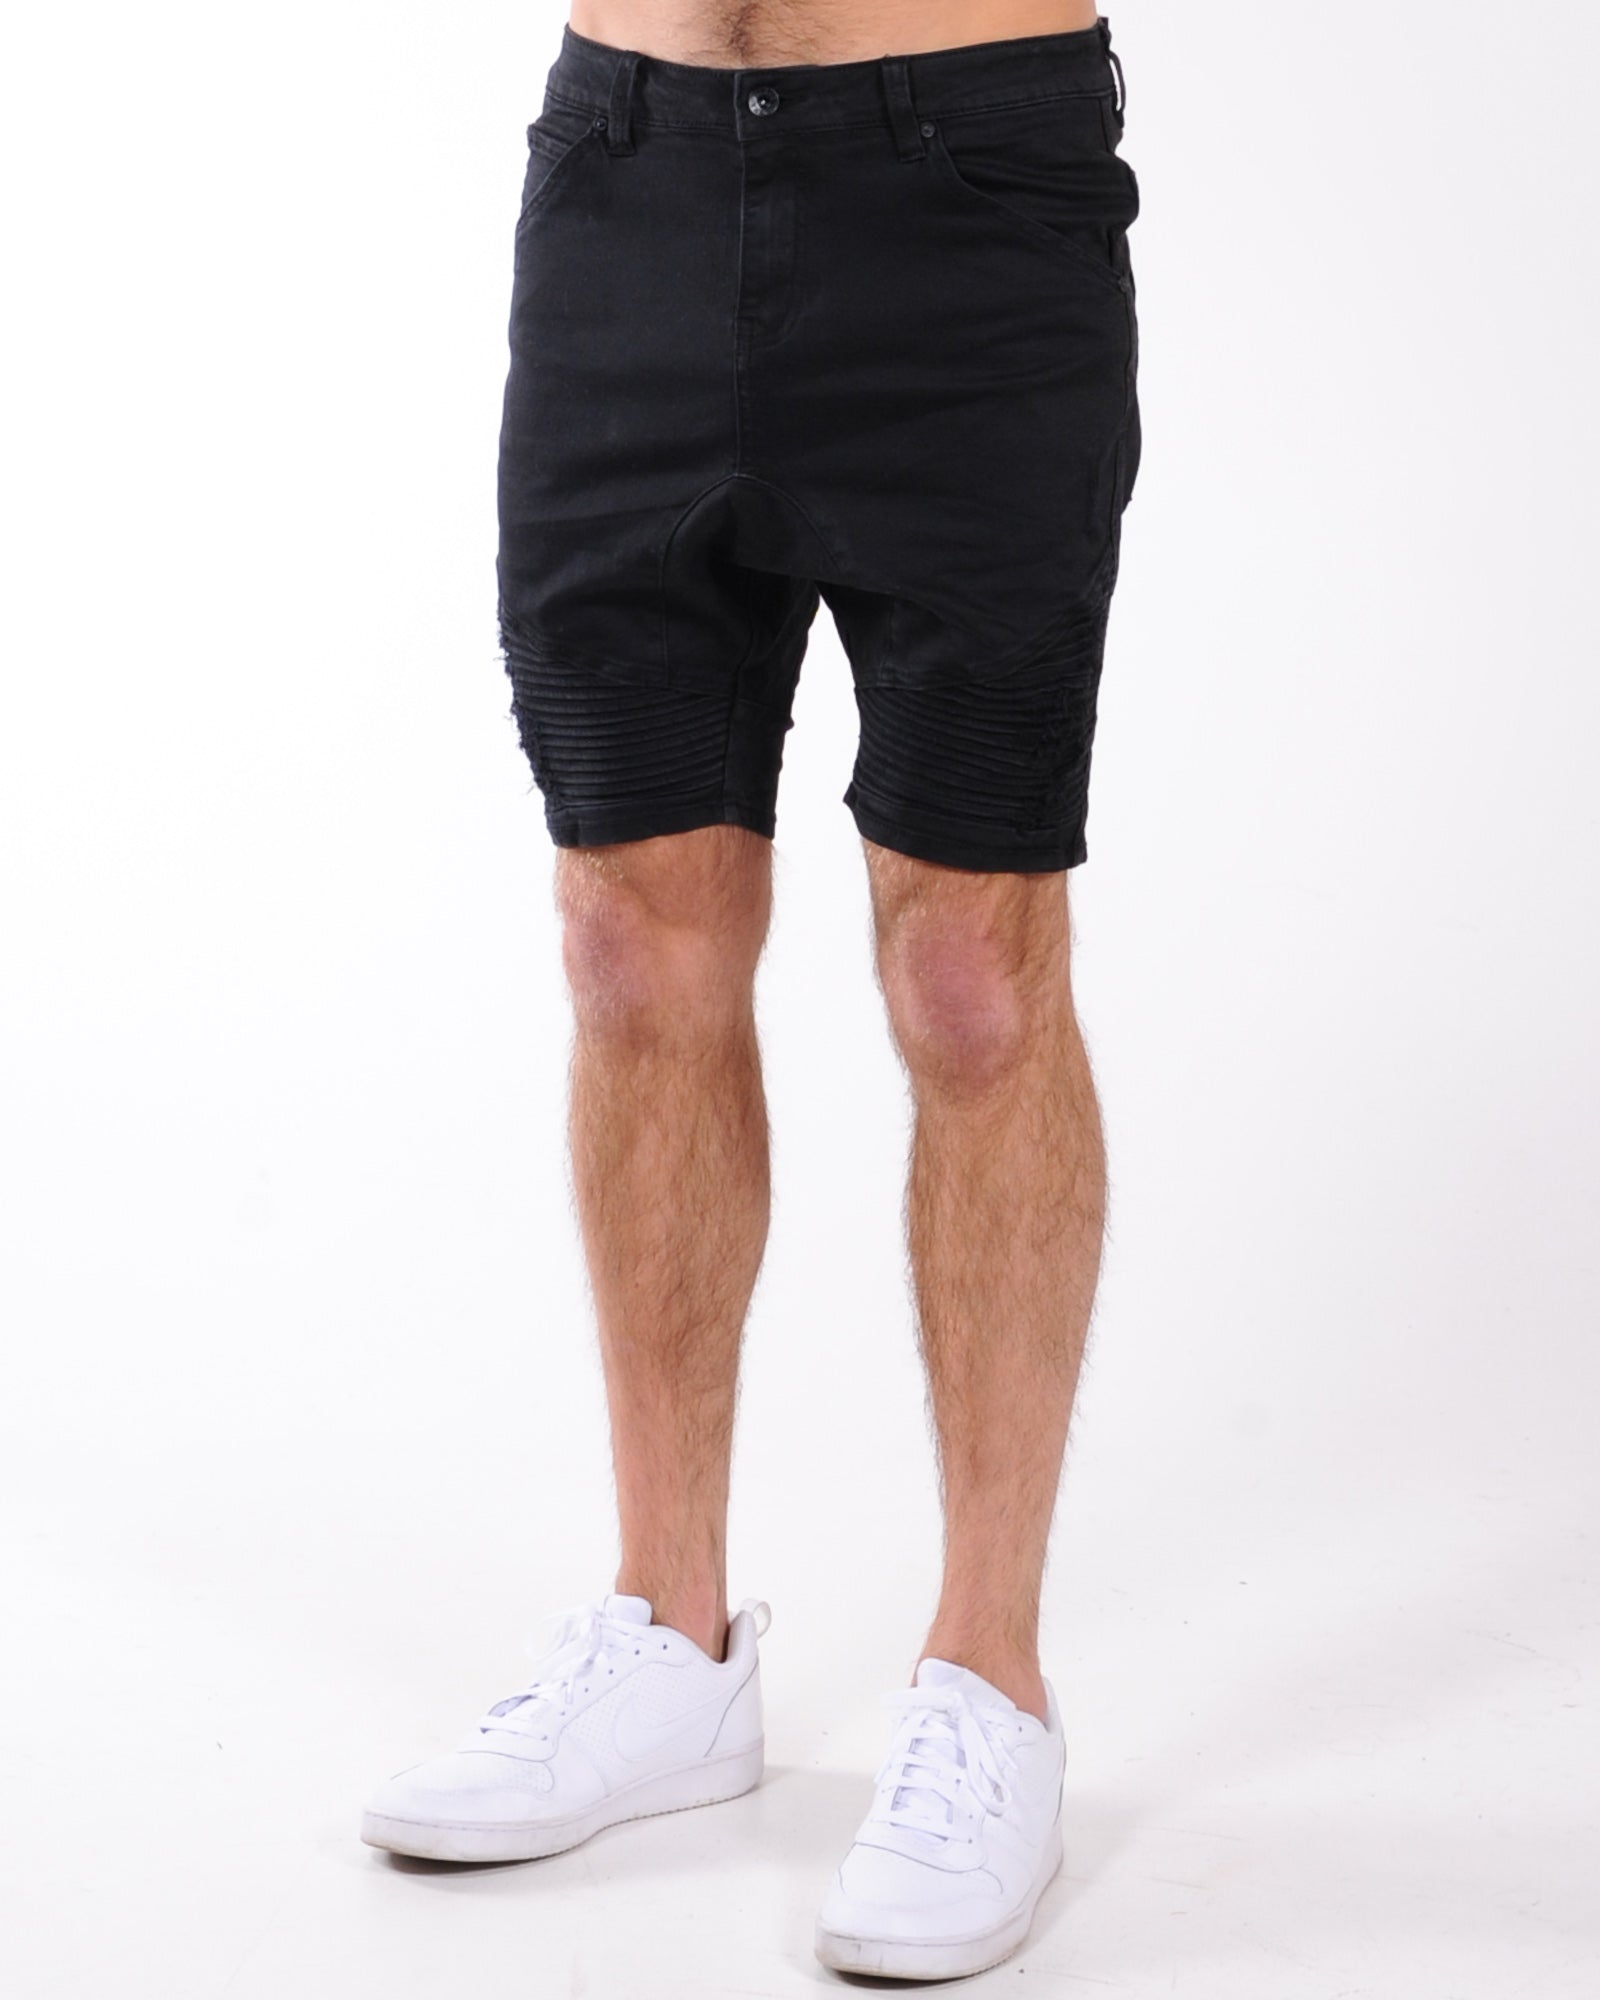 Silent Theory Outlaw Short - Washed Black